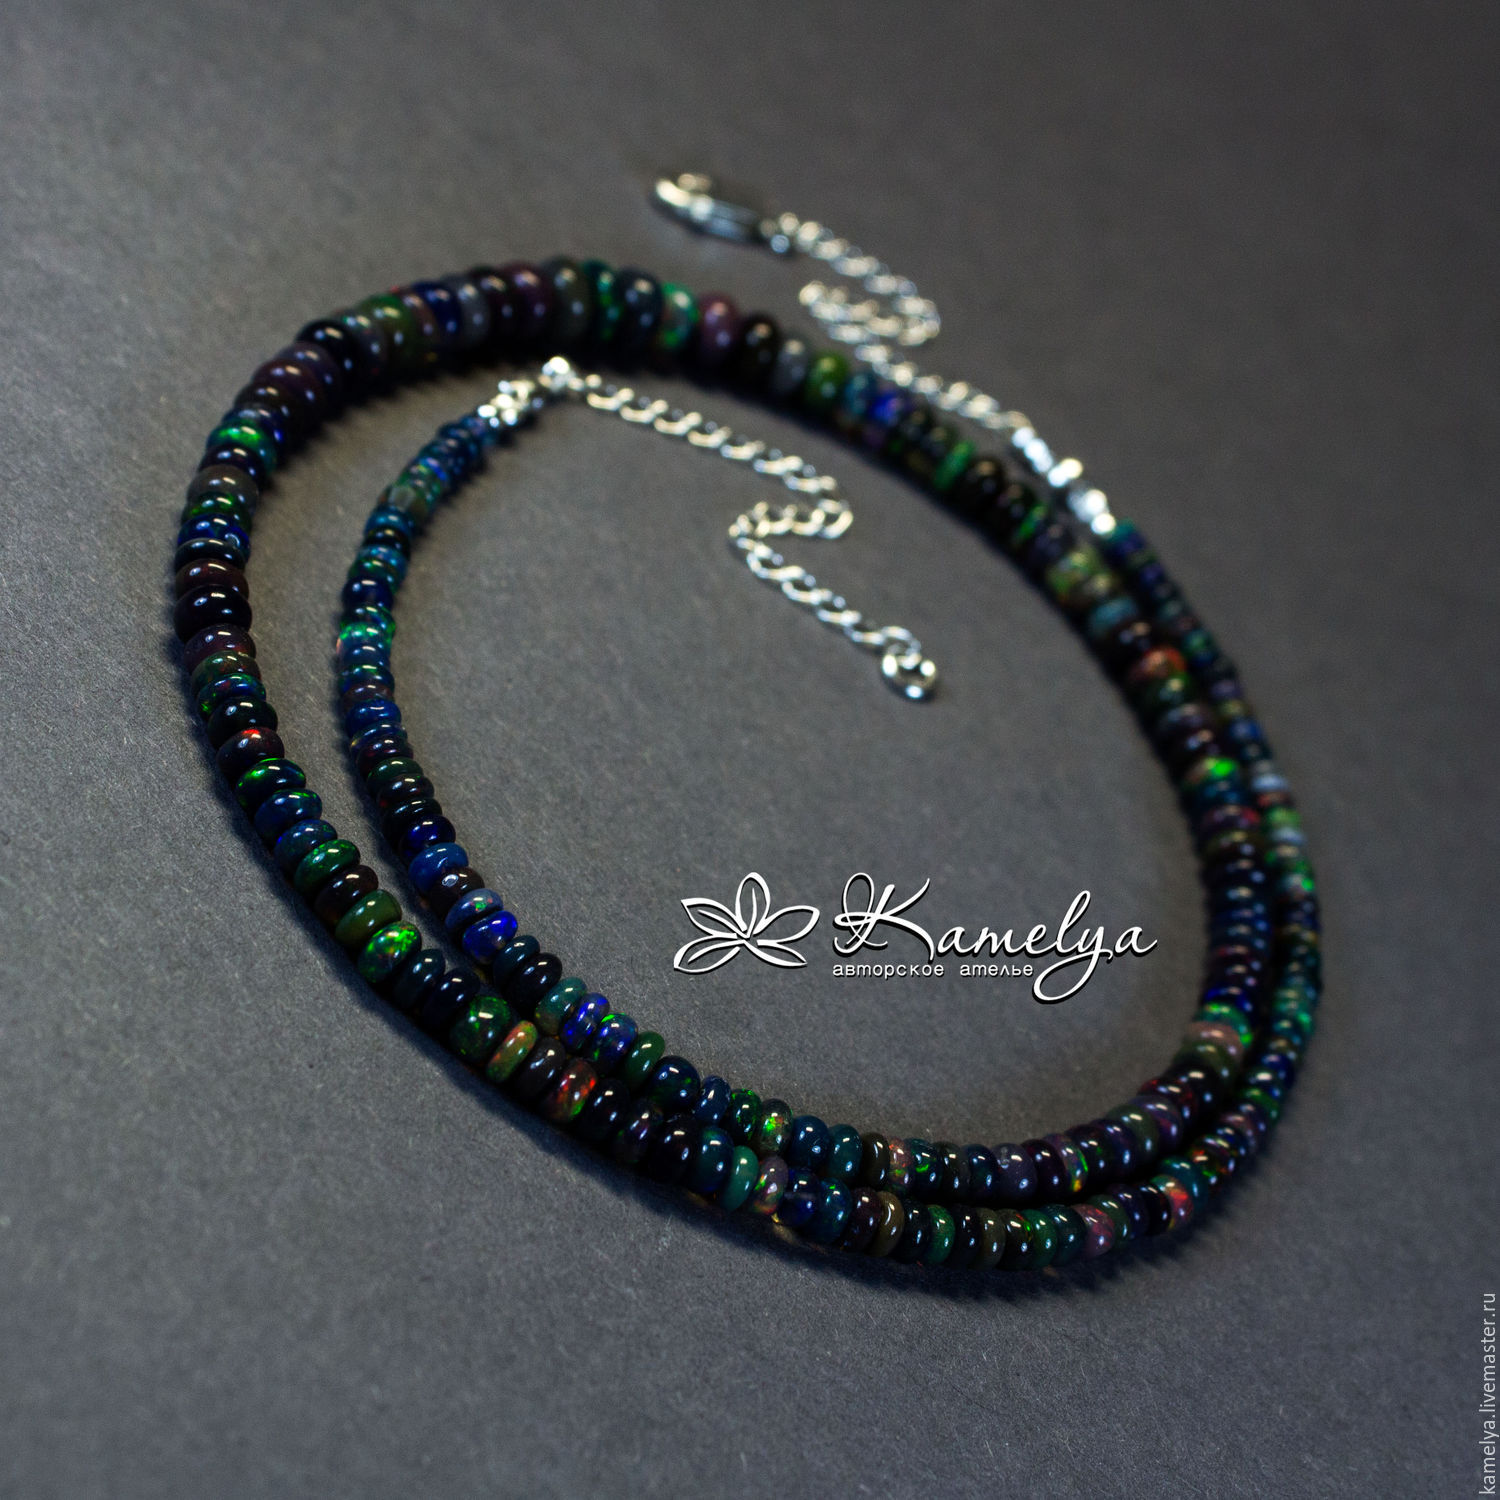 necklace black opal pendant modern